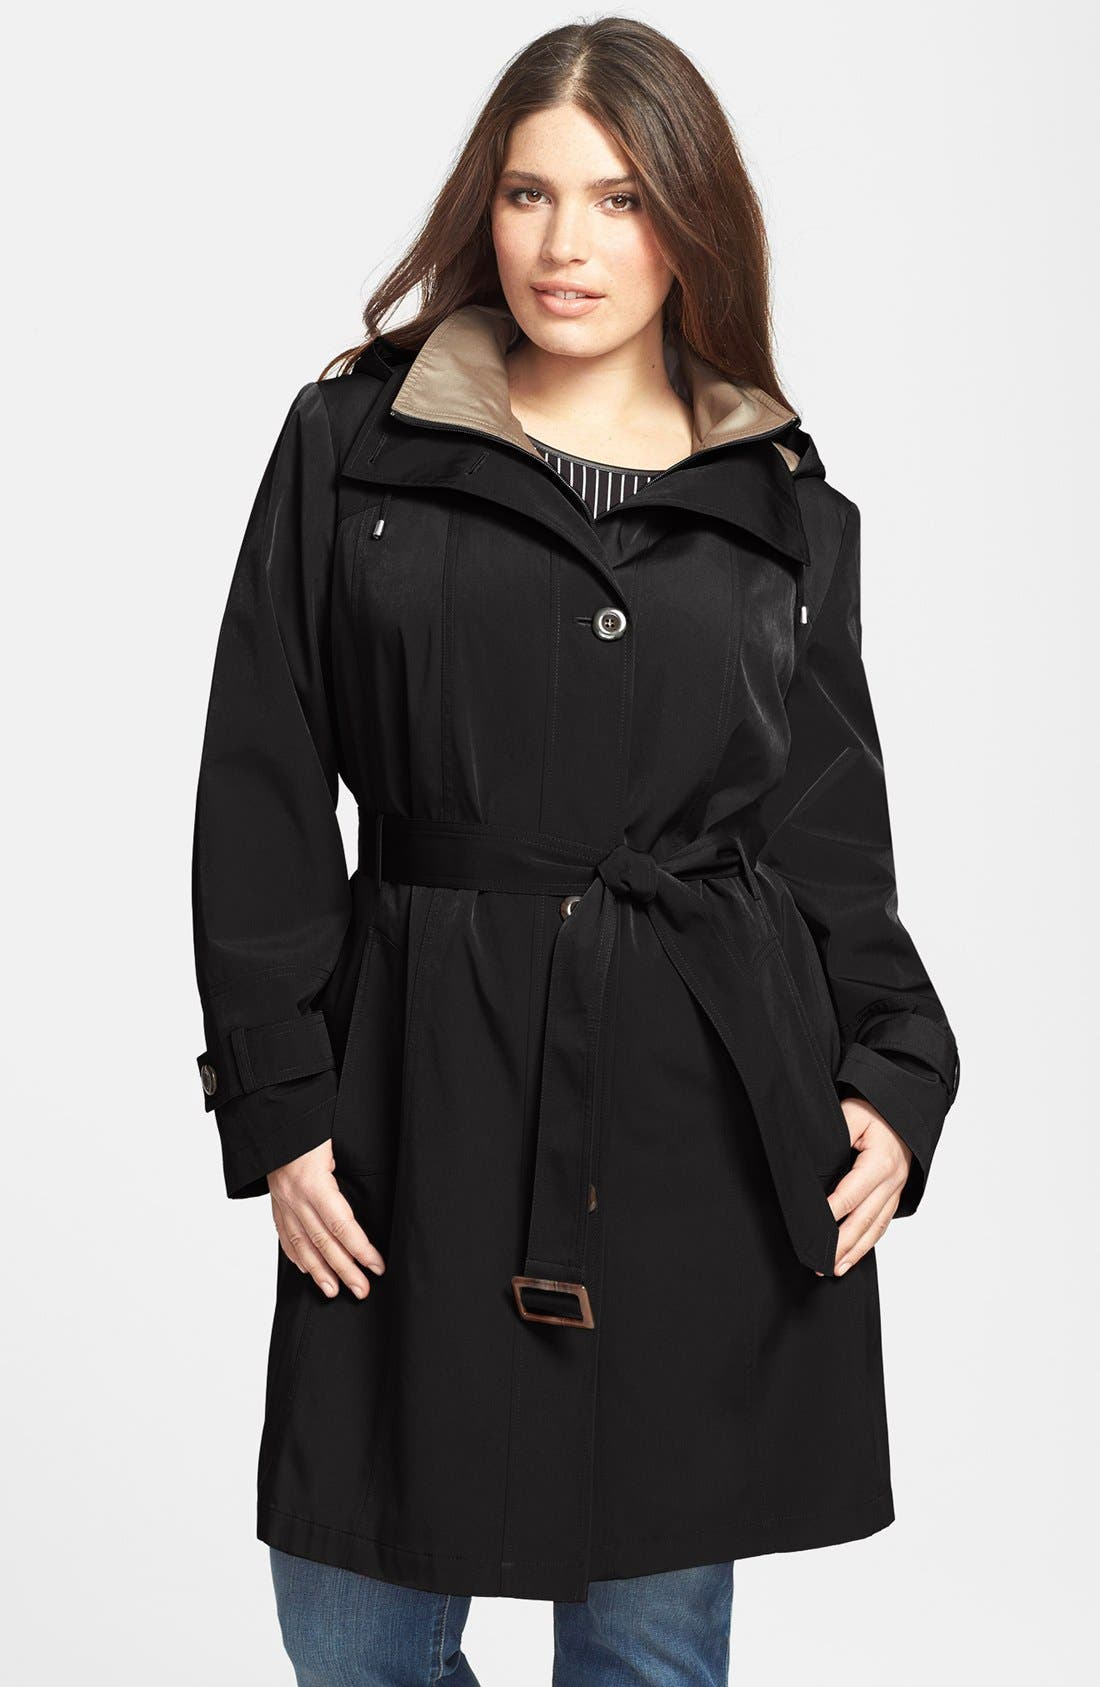 Main Image - Gallery Two-Tone Belted Walking Coat with Detachable Hood (Plus Size)